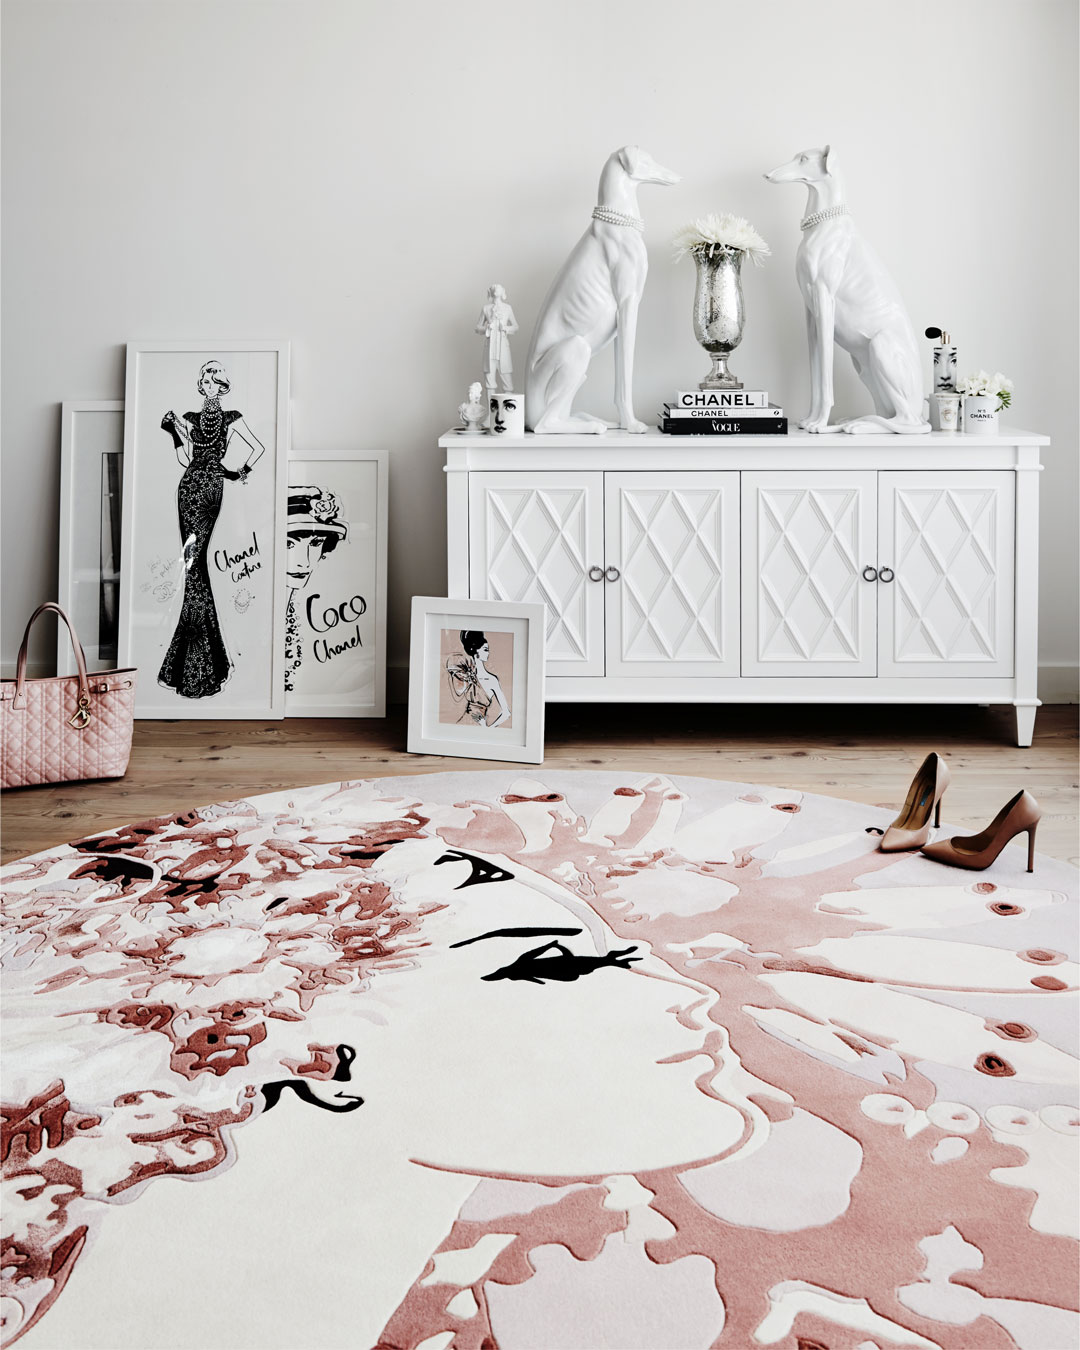 Styled image of The Emperors Pearls rug by Megan Hess in pink colour